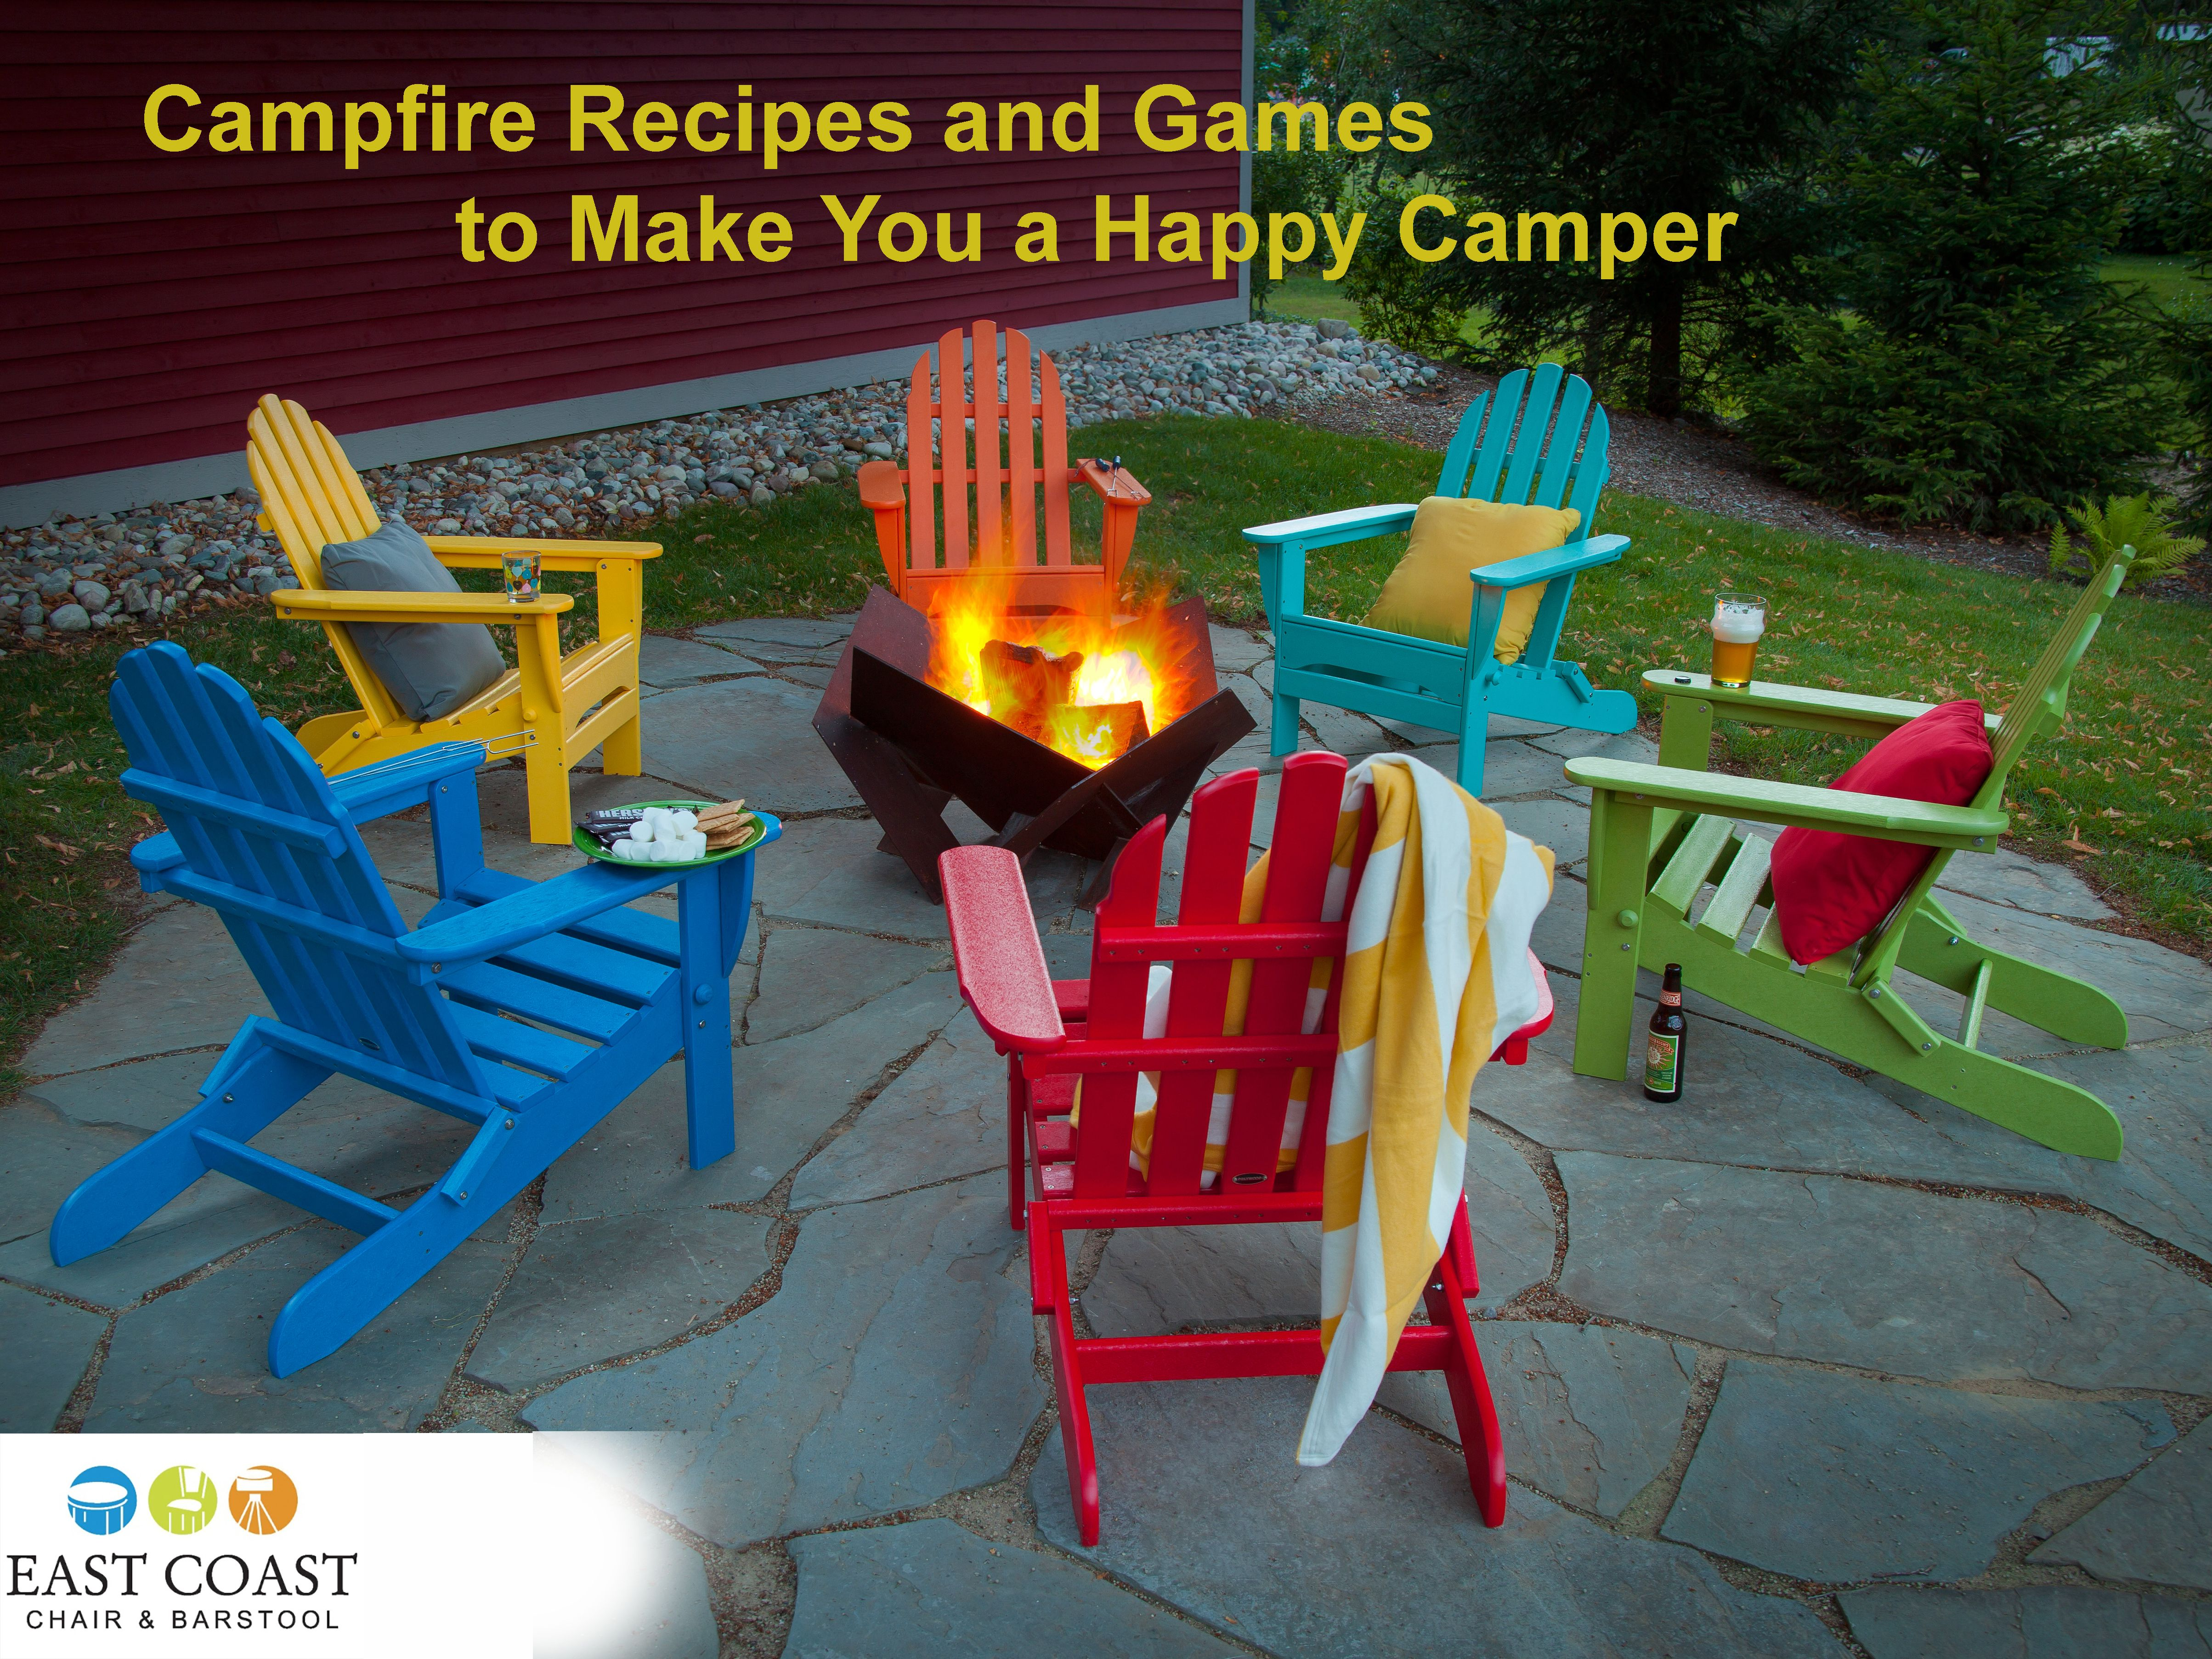 Campfire Recipes and Games to Make You a Happy Camper